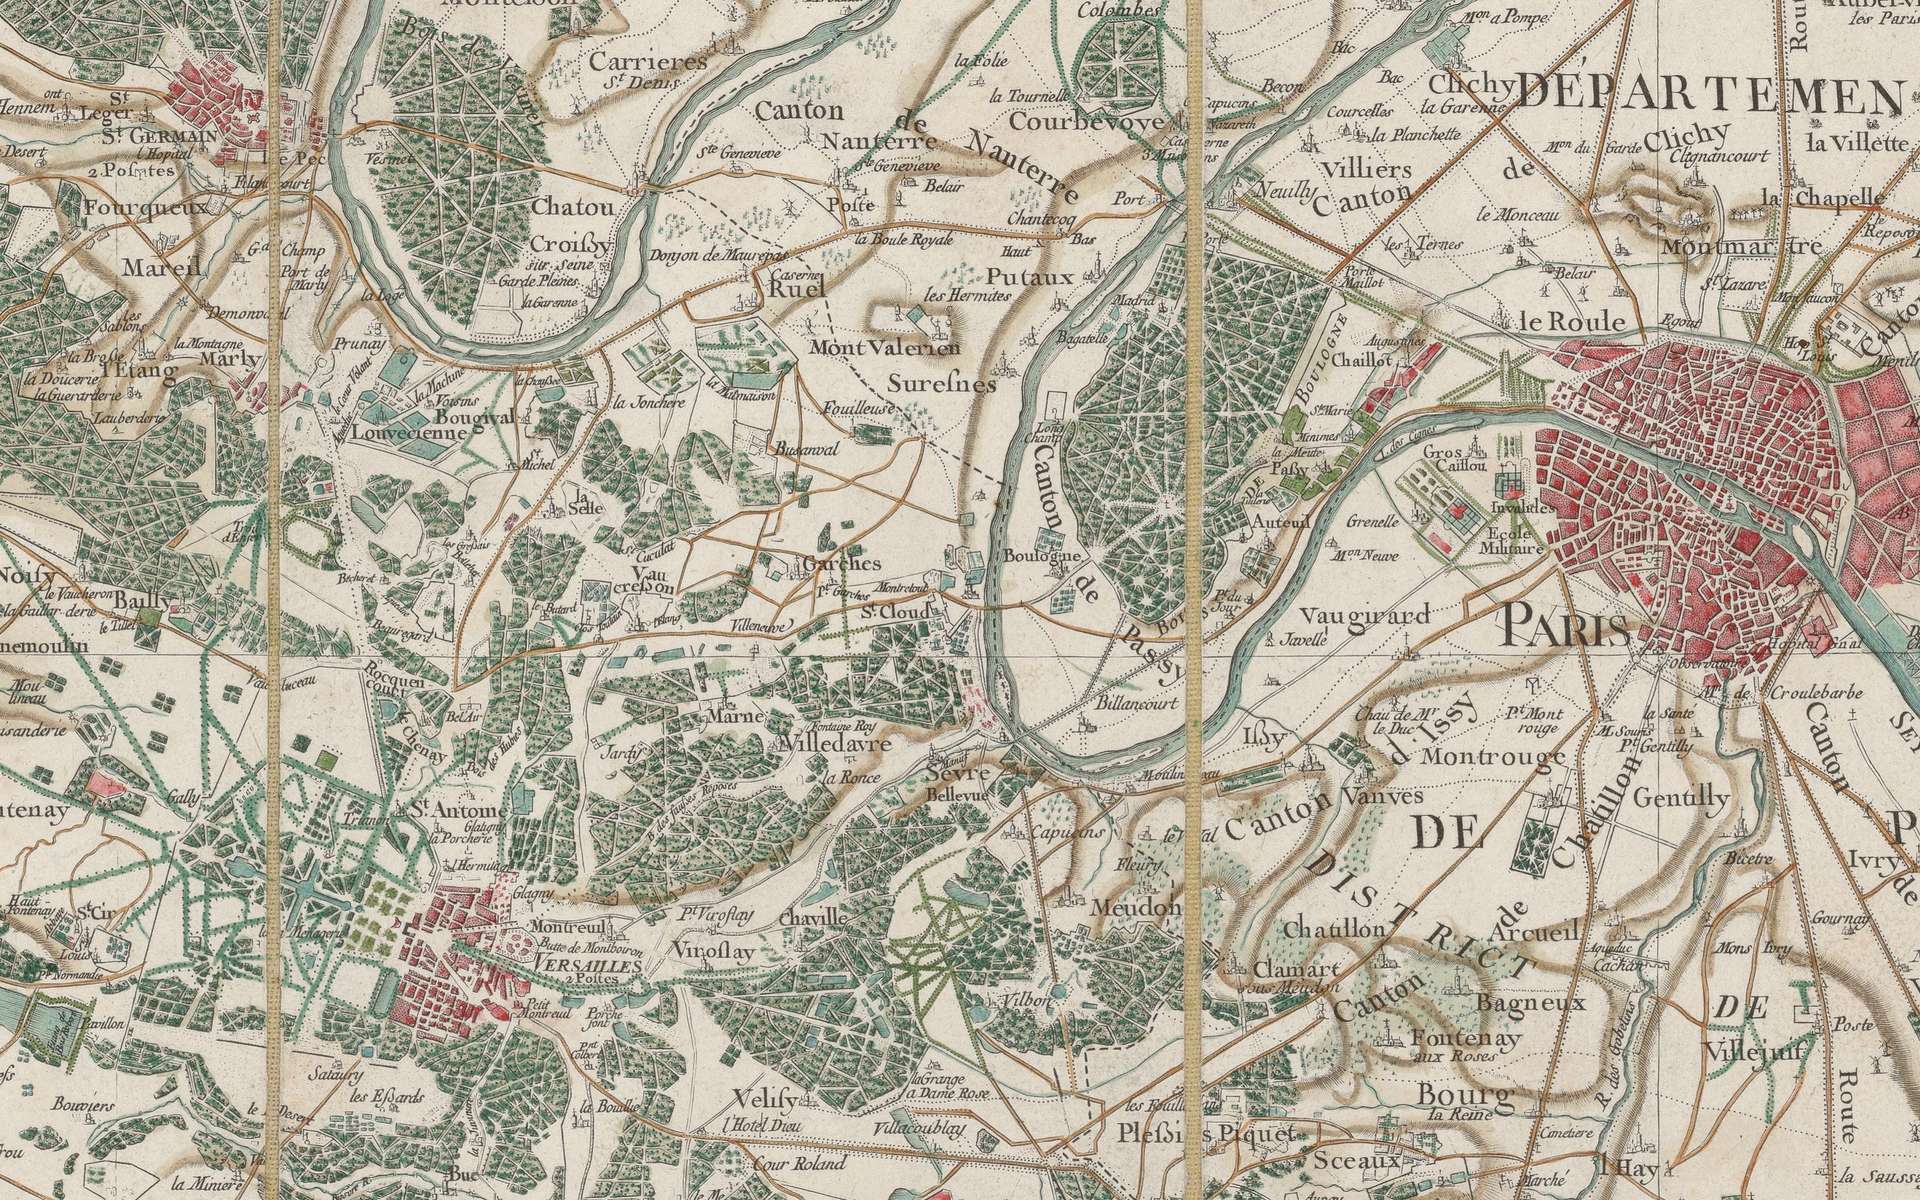 Extrait de la Carte générale de la France, feuille 1, Paris et environs (Vincennes, Versailles, Marly, Saint Germain en Laye...). Auteur : Cassini de Thury, 1756. Echelle 1/86.400e. Site Gallica, BnF. © Bibliothèque nationale de France, domaine public